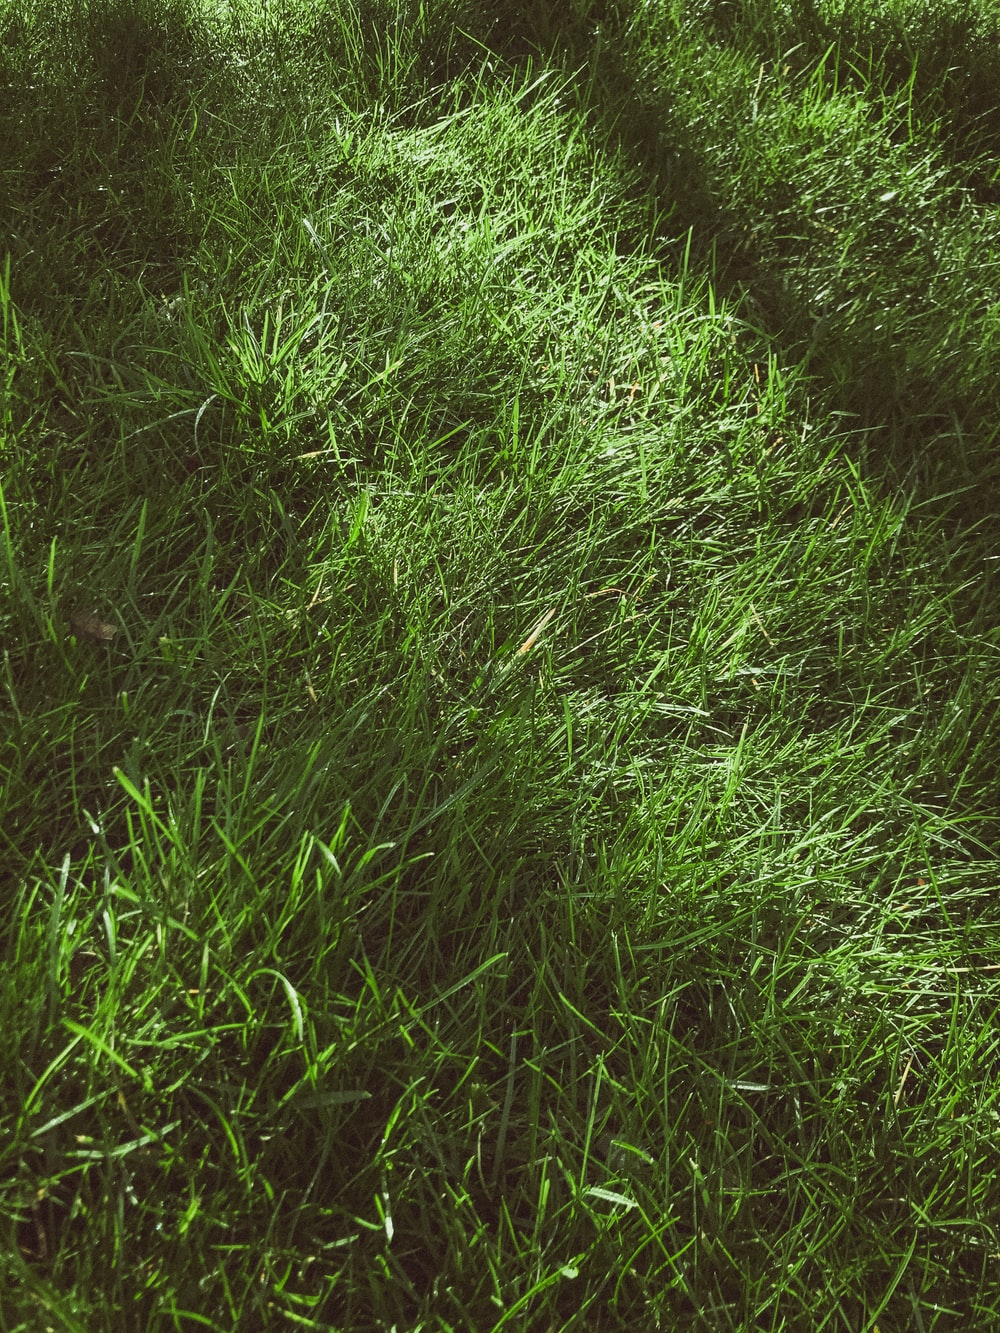 green grass field during daytime